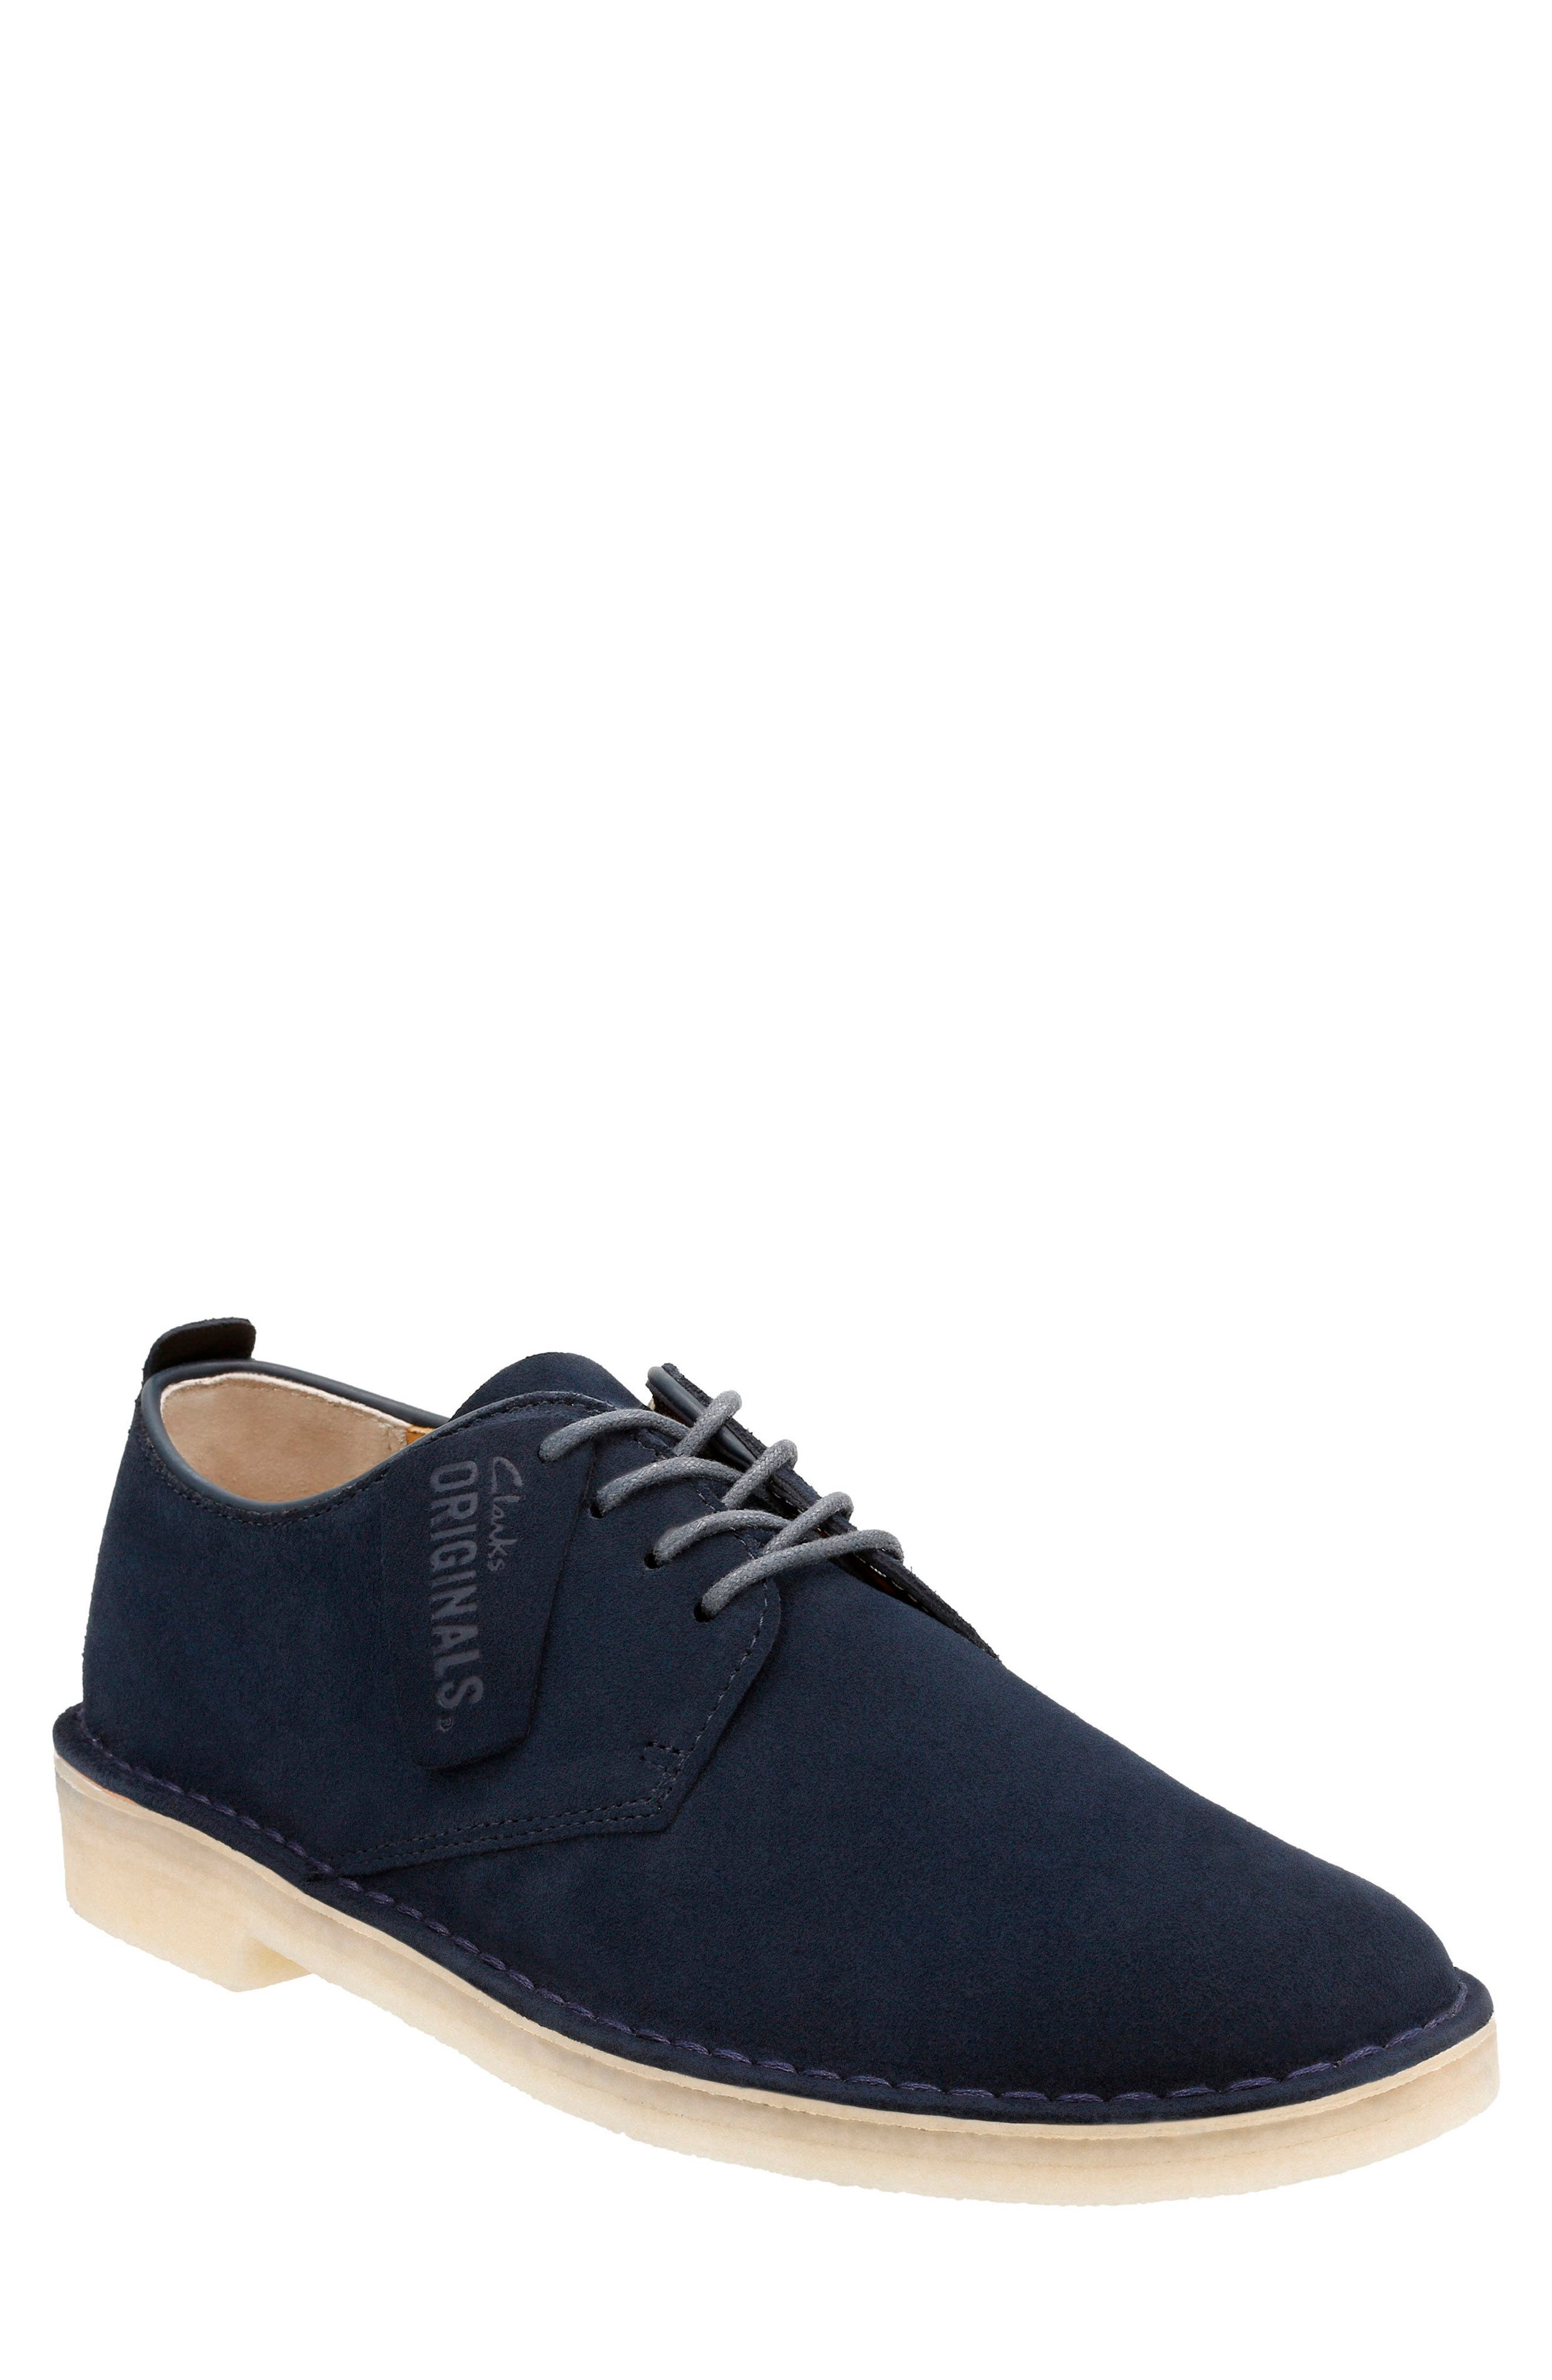 Clarks® Originals 'Desert London' Oxford